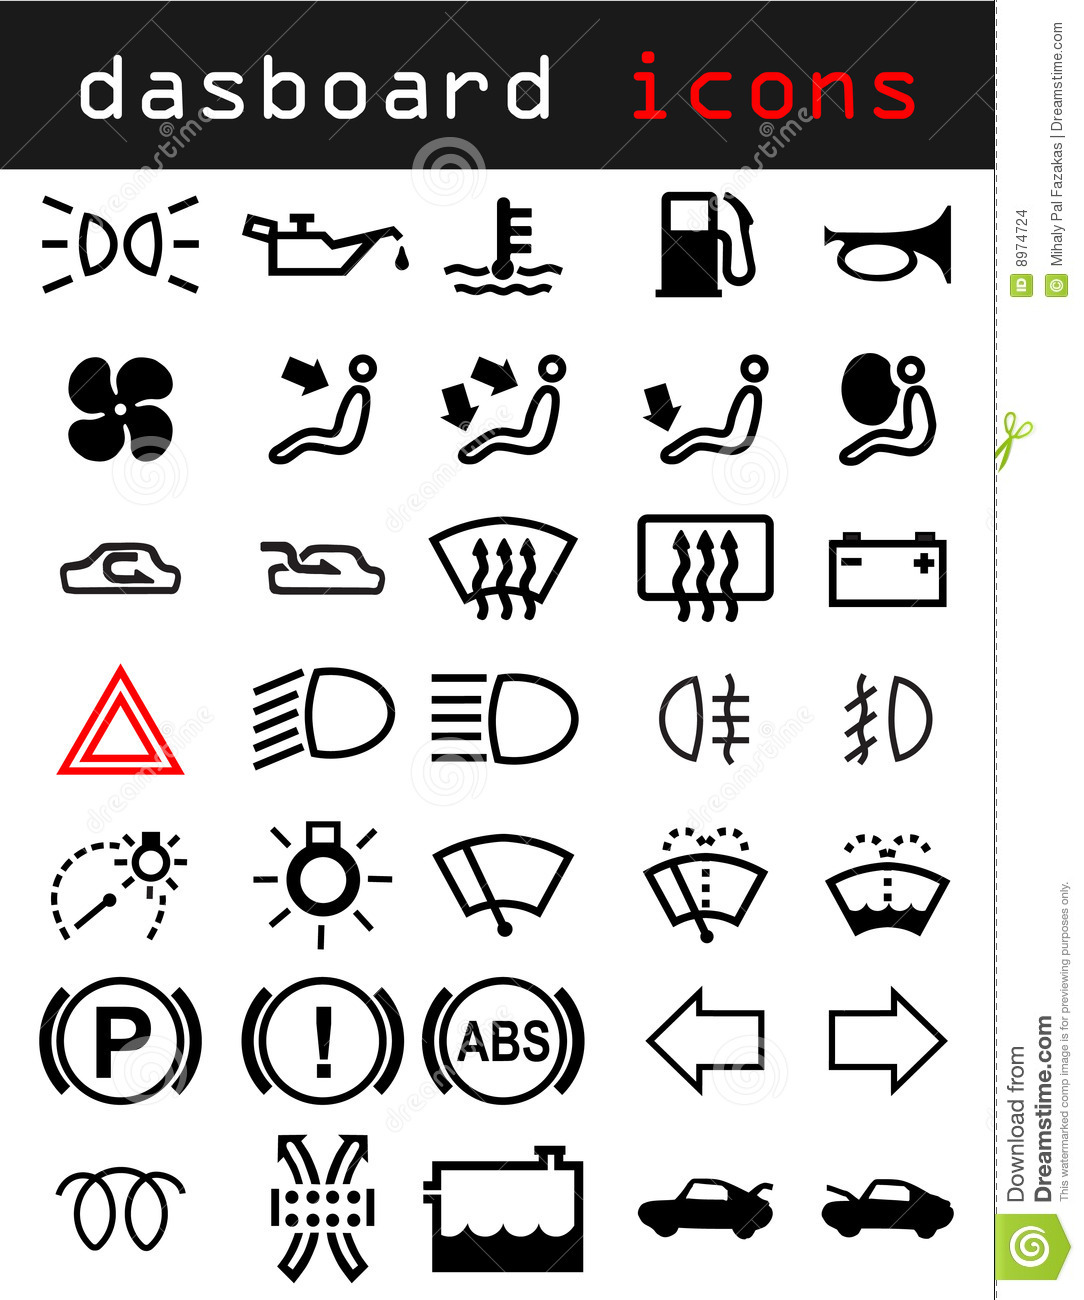 Dashboard Icons Stock Vector Illustration Of Round Panel